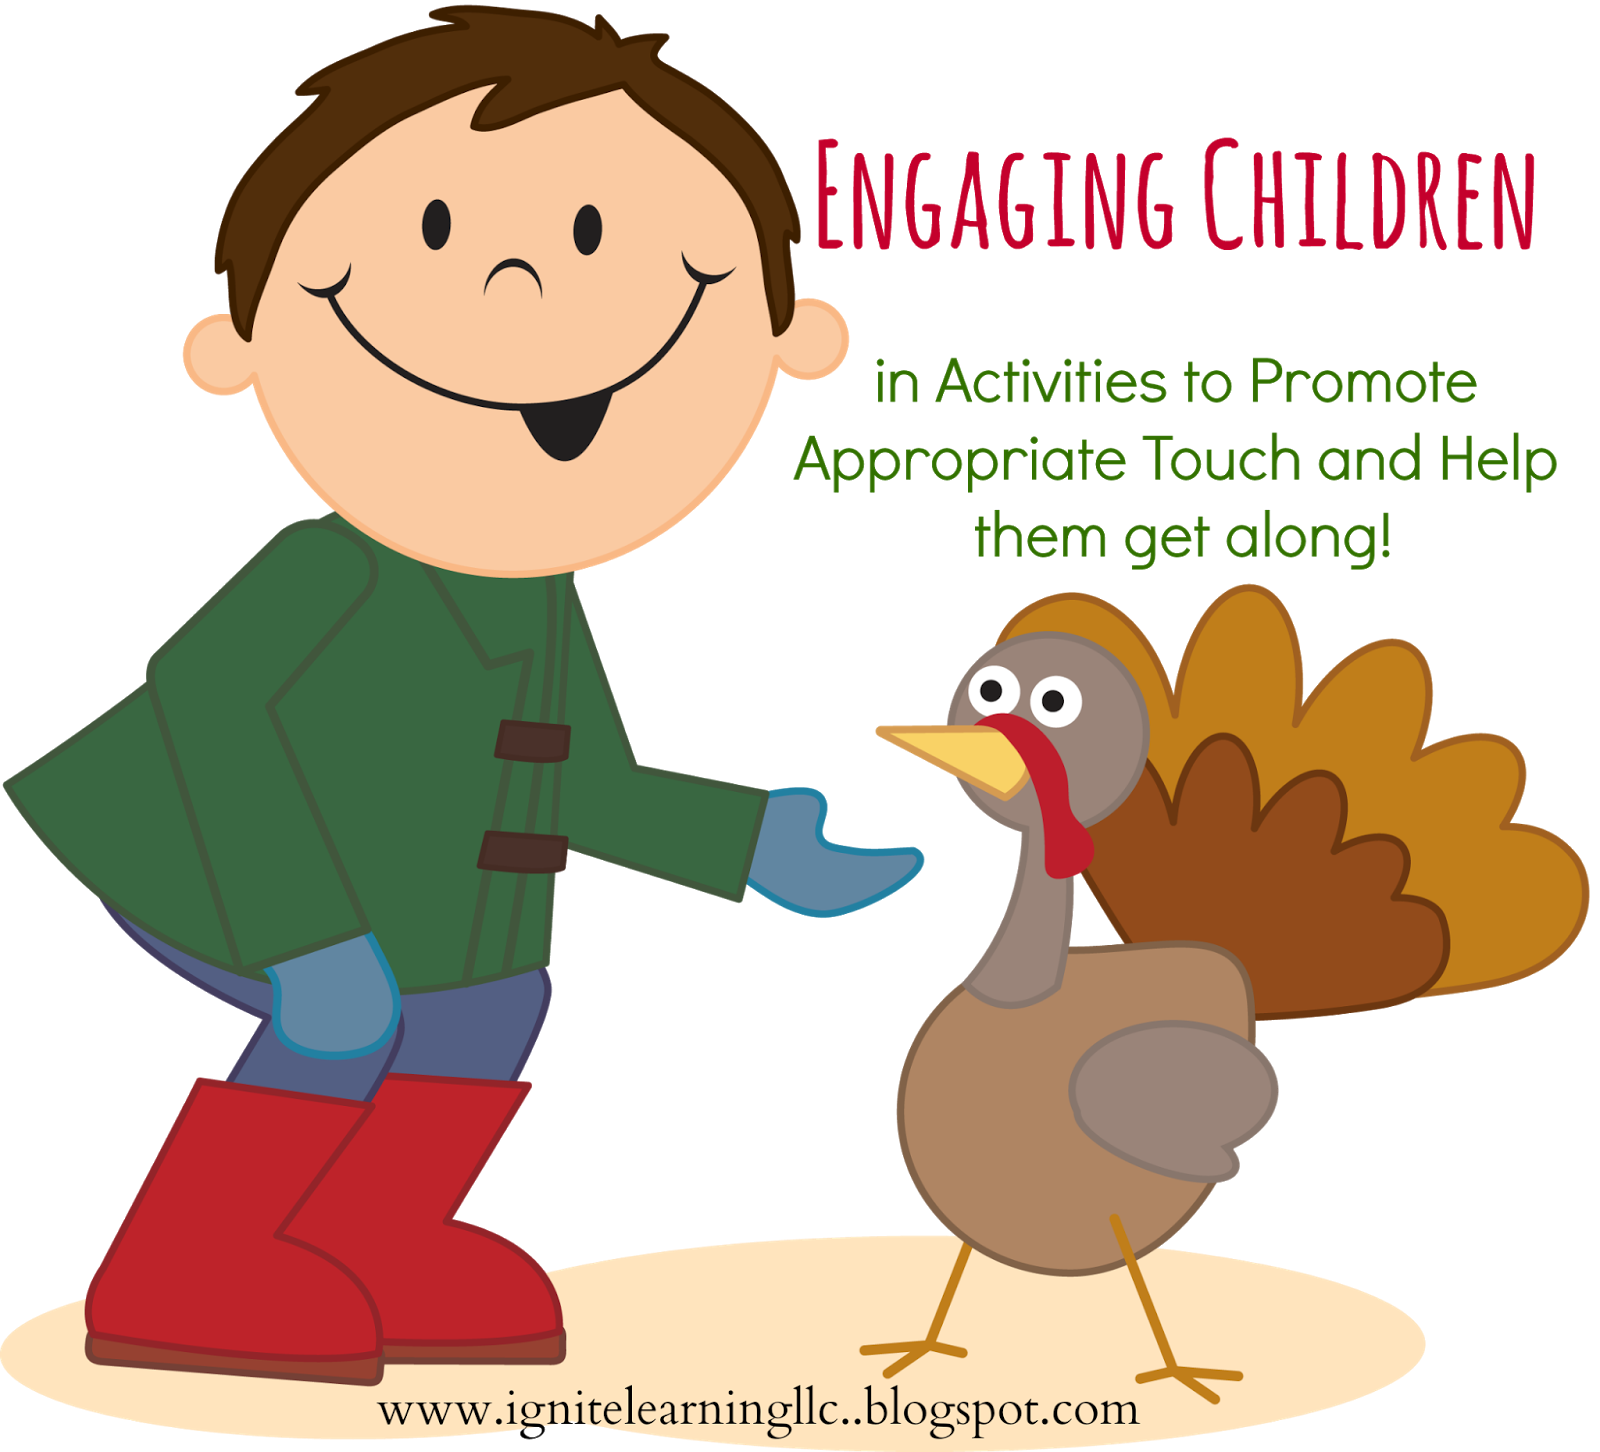 Clipart child sitting criss cross banner library download Ignite Learning with Conscious Discipline LLC: Helping Children ... banner library download